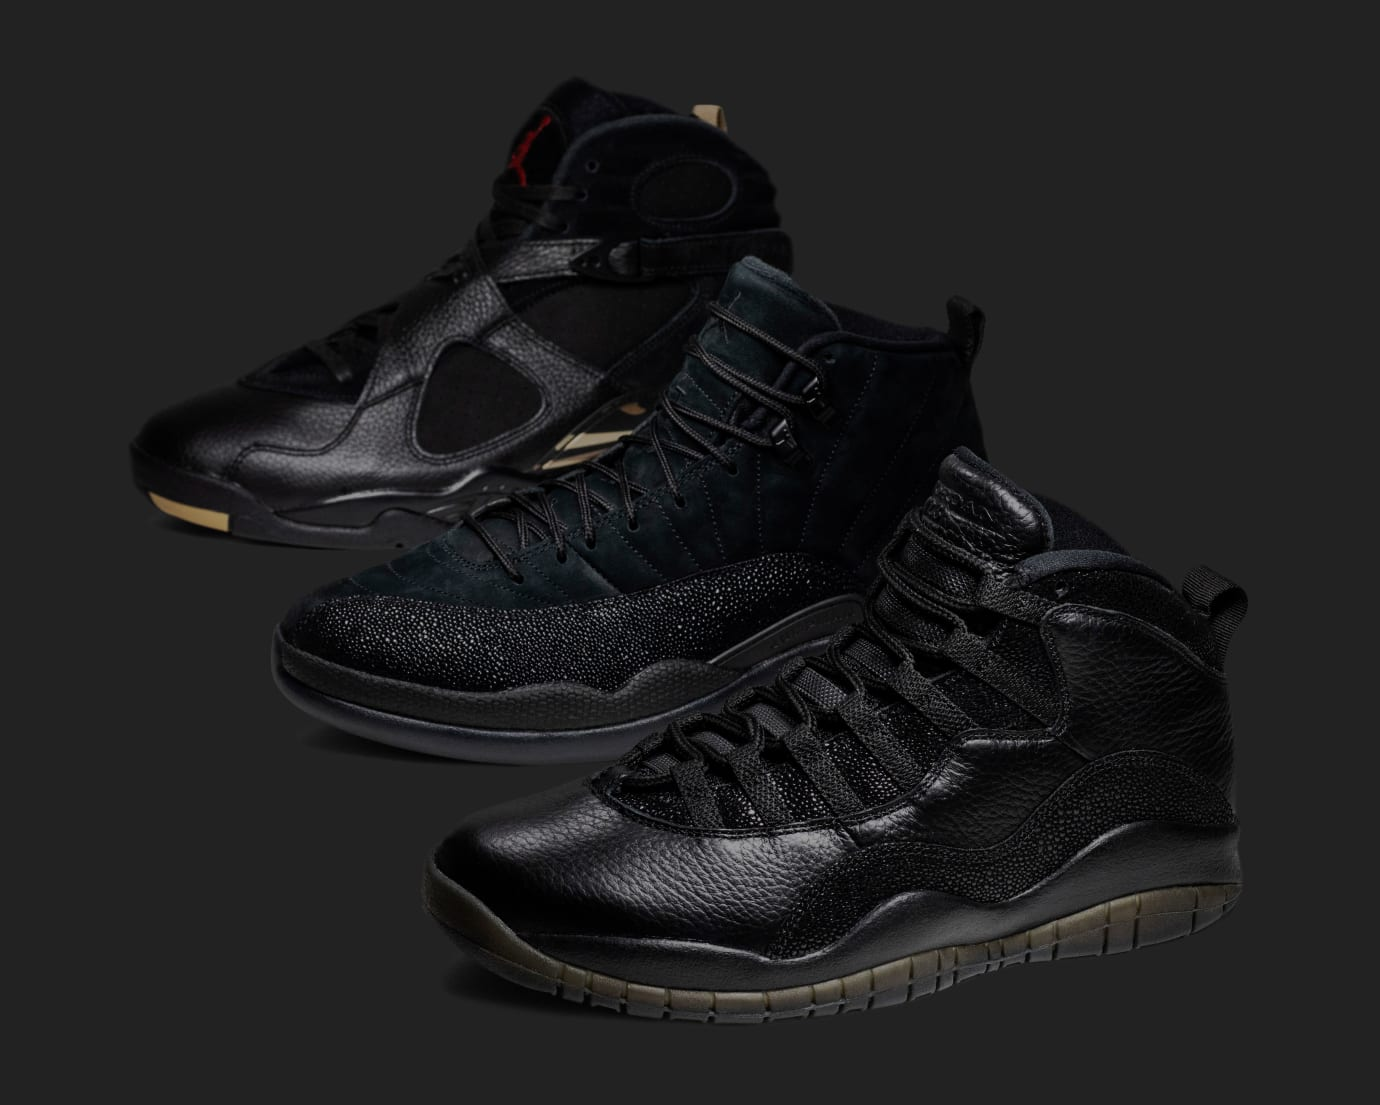 GOAT Black Friday 2018 'OVO Black Pack'